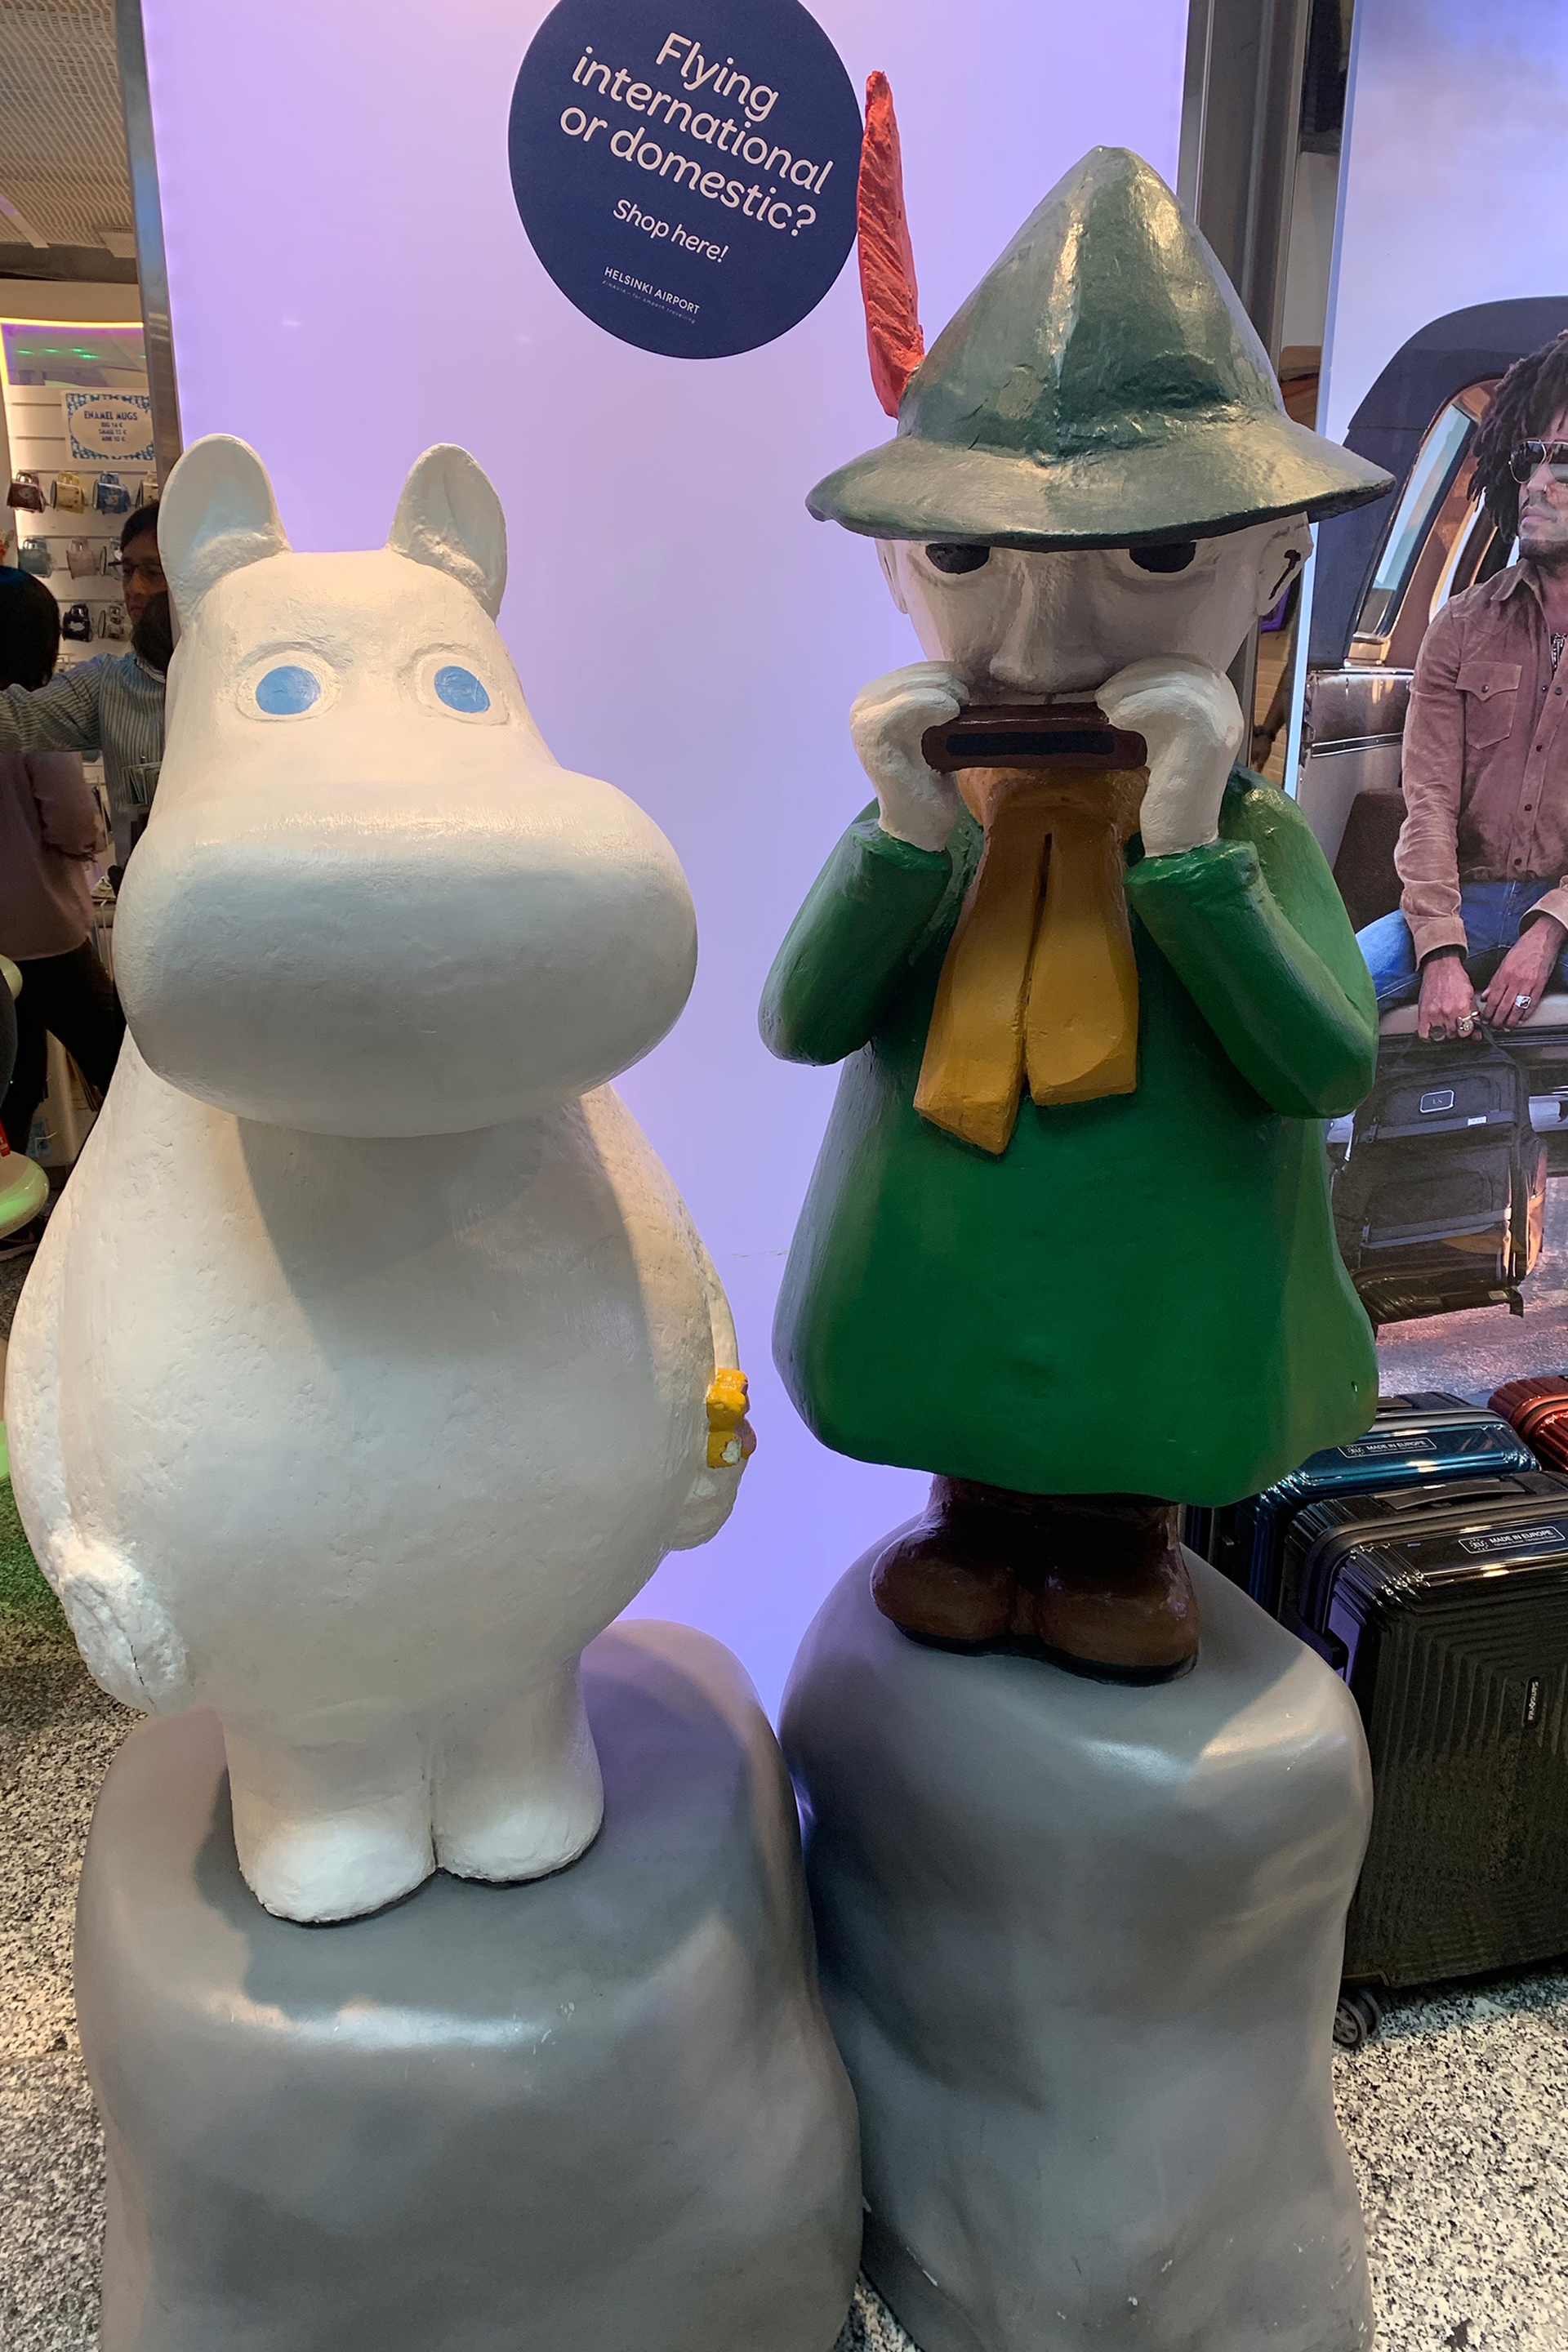 Mirthful Moomin character - shaped like jolly hippopotami with a belly full of laughs| Helsinki | Finland| STIRworld